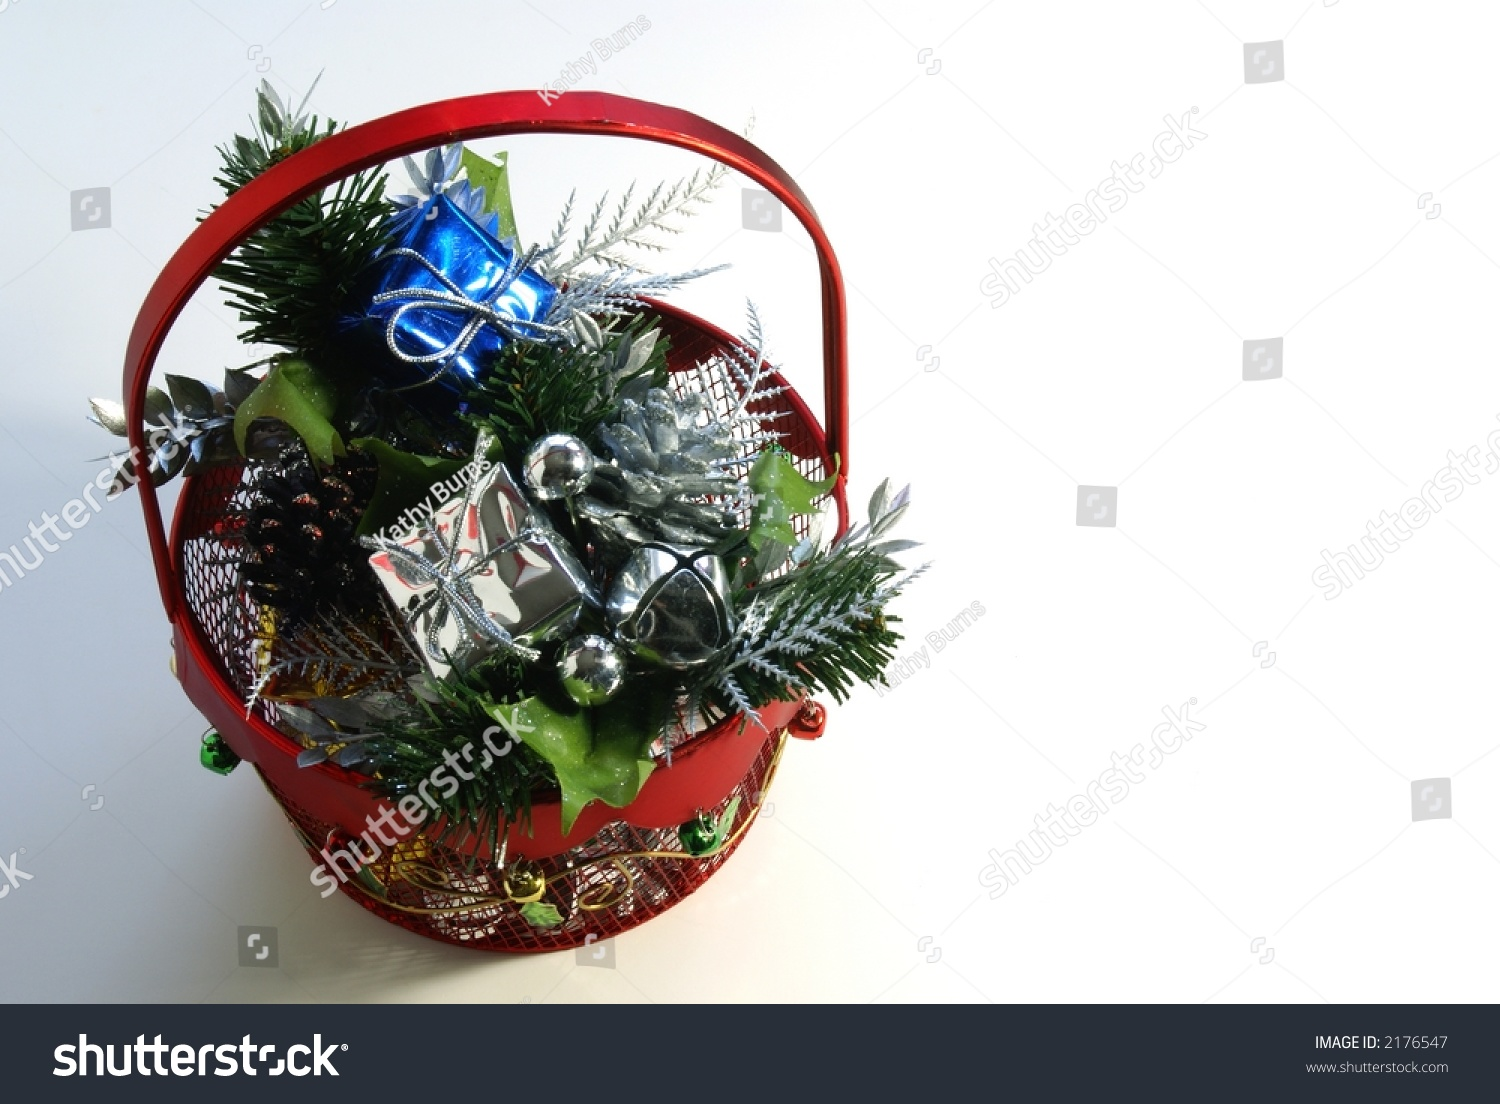 Red metal christmas gift basket decorations stock photo